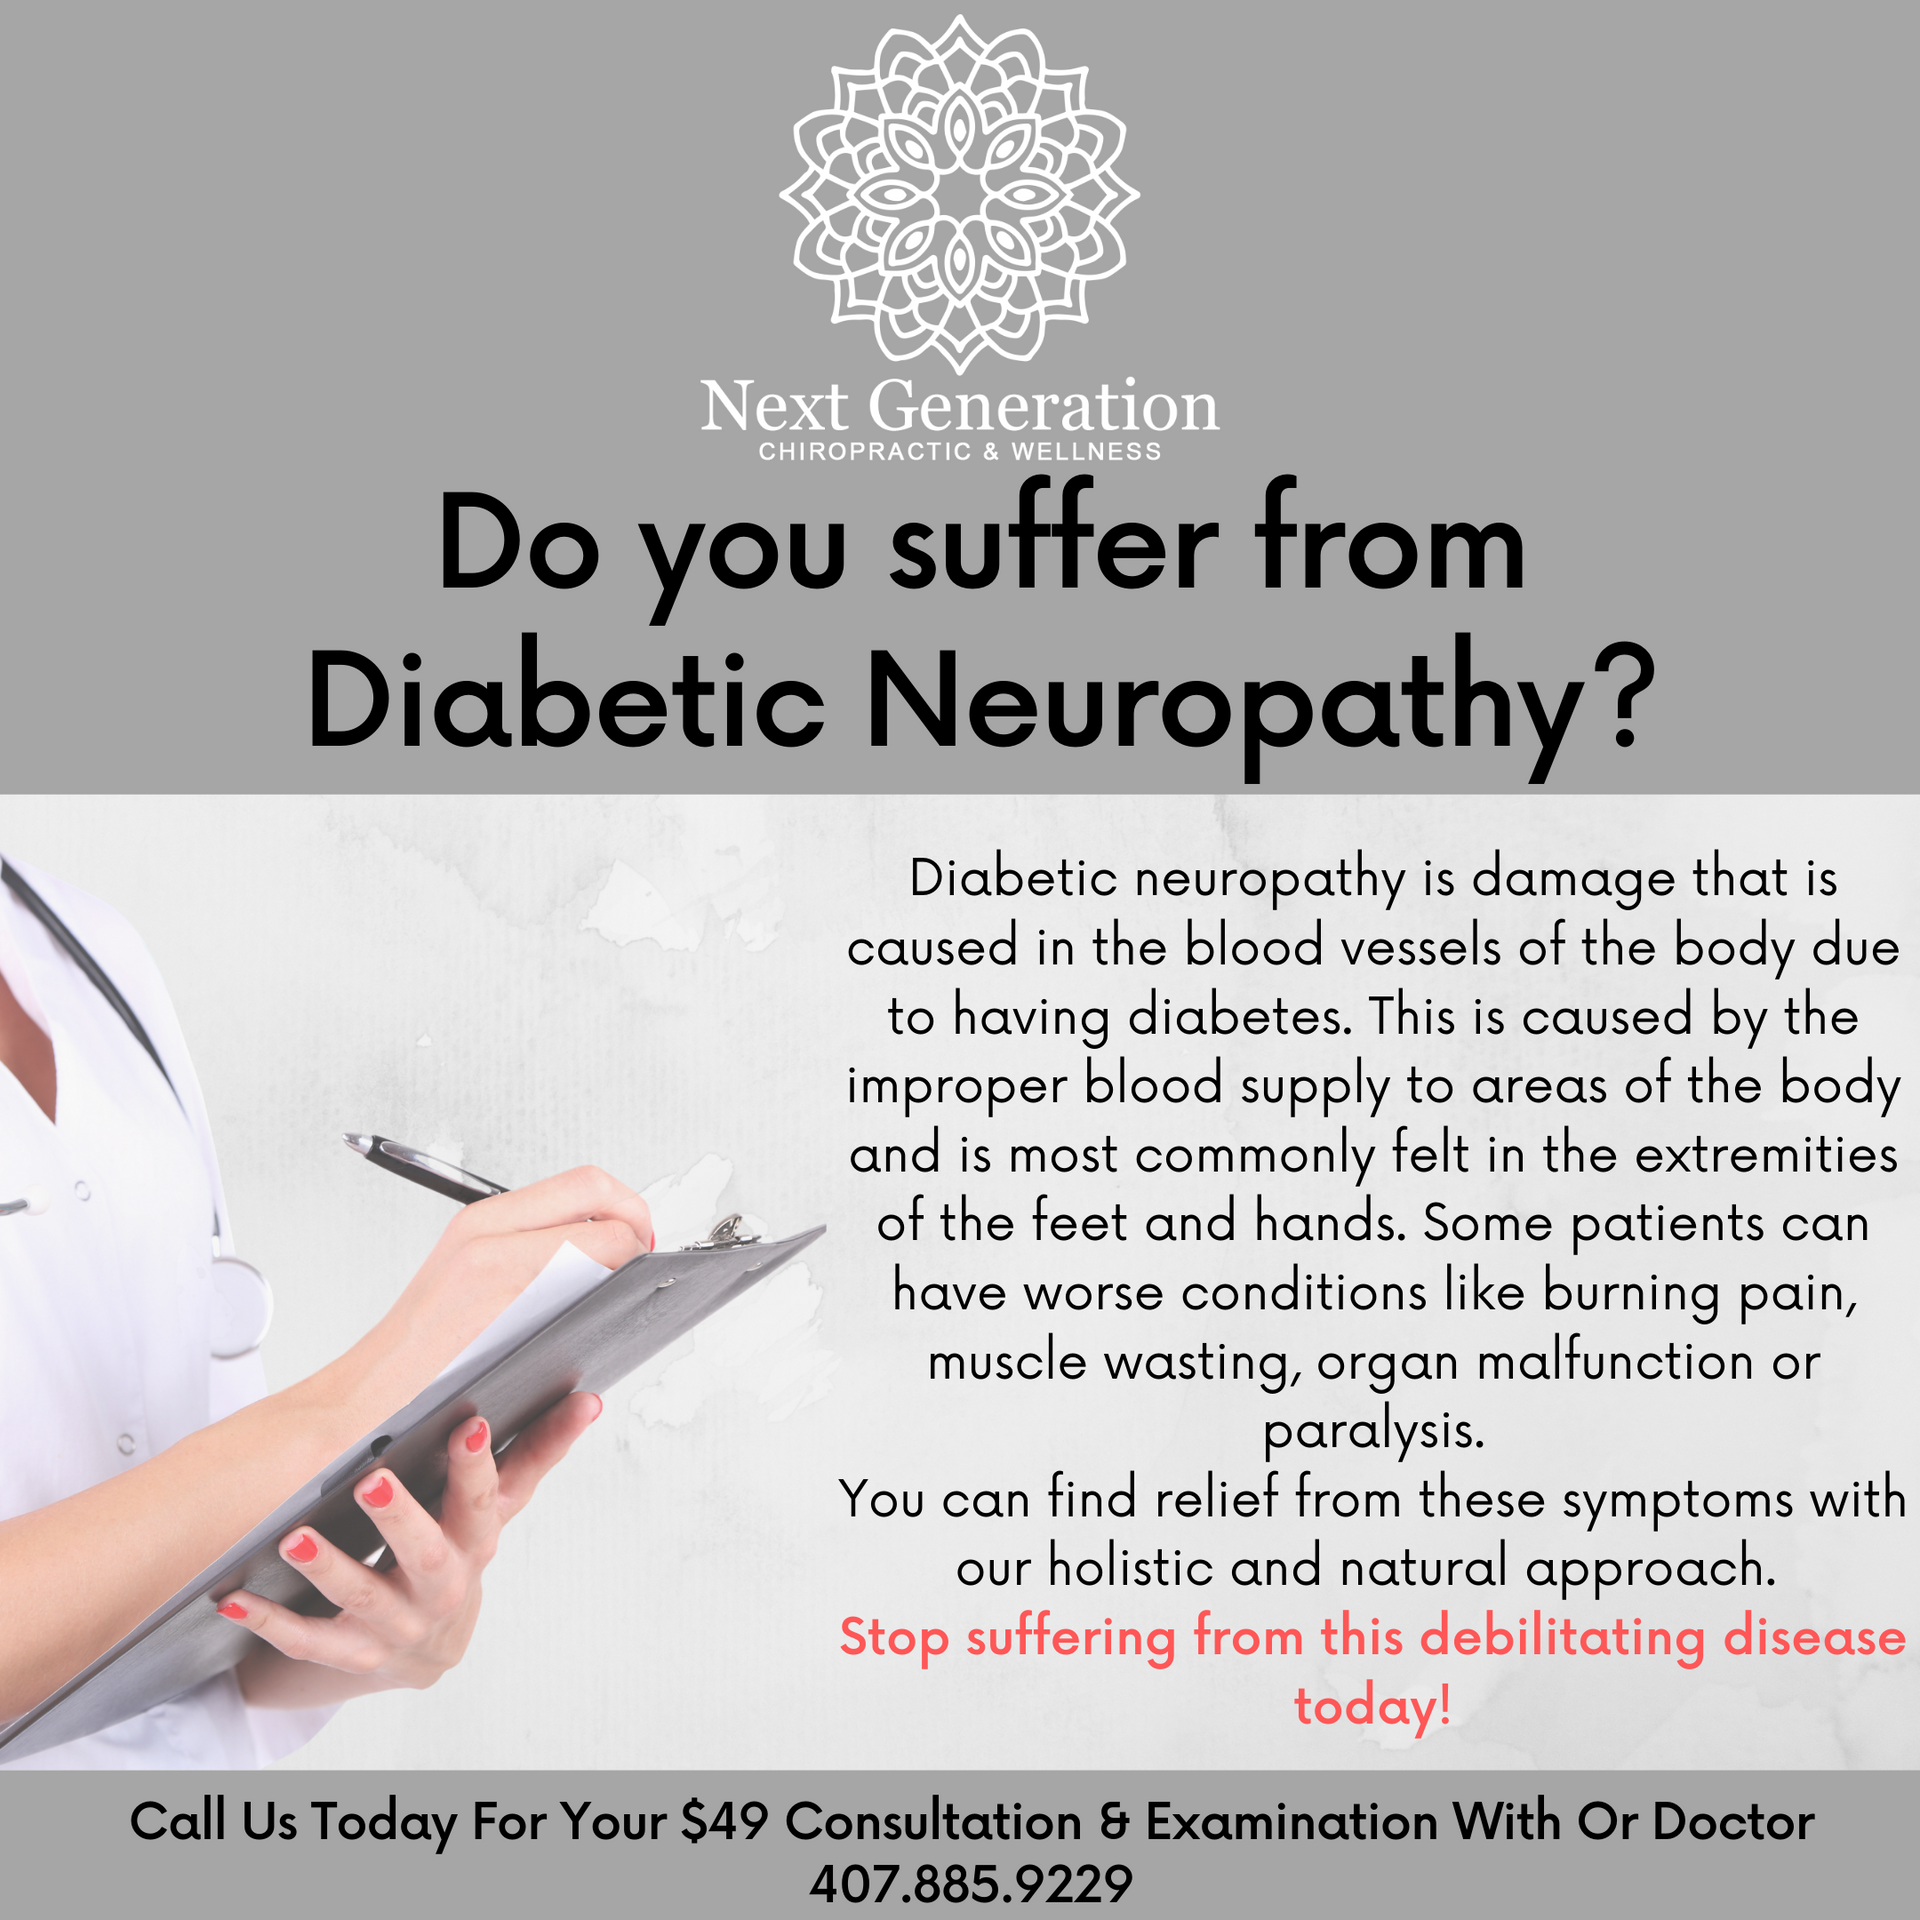 Do you suffer from Diabetic Neuropathy